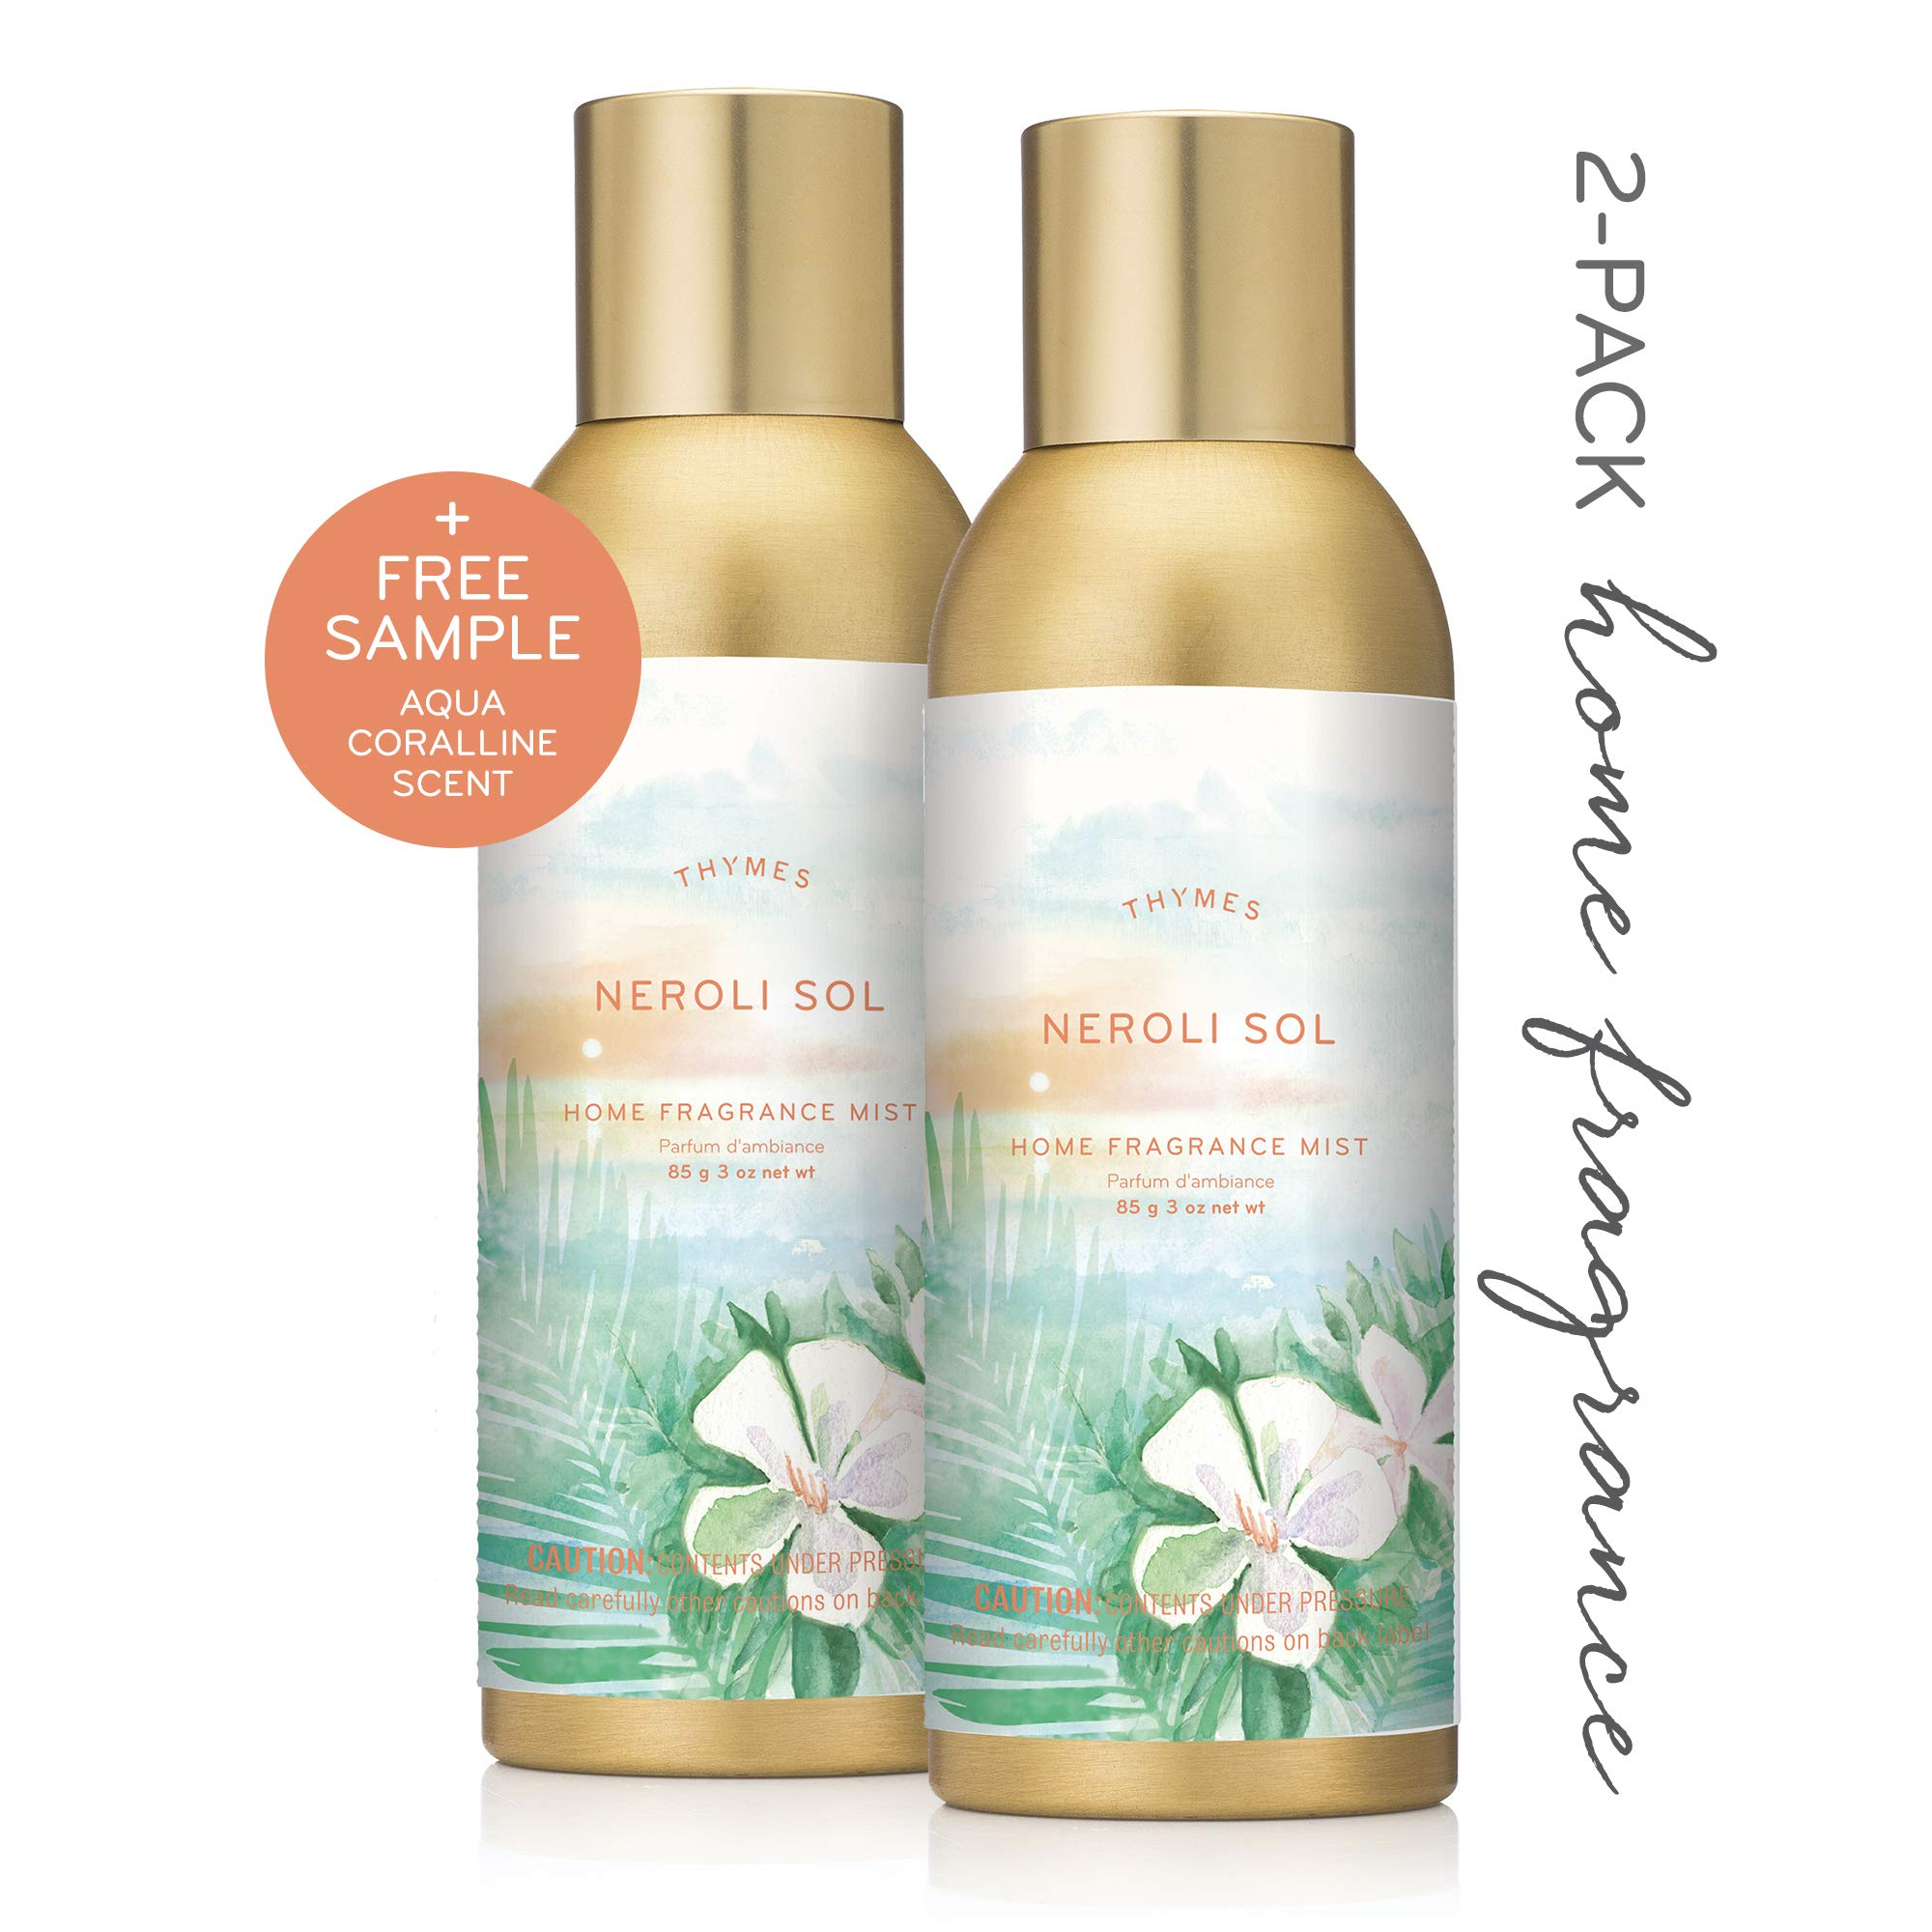 Thymes - Neroli Sol Home Fragrance Mist (2-Pack) with Free Aqua Coralline Sample Pack - Relaxing Coconut Scented Room Spray - 3 oz by Thymes (Image #1)